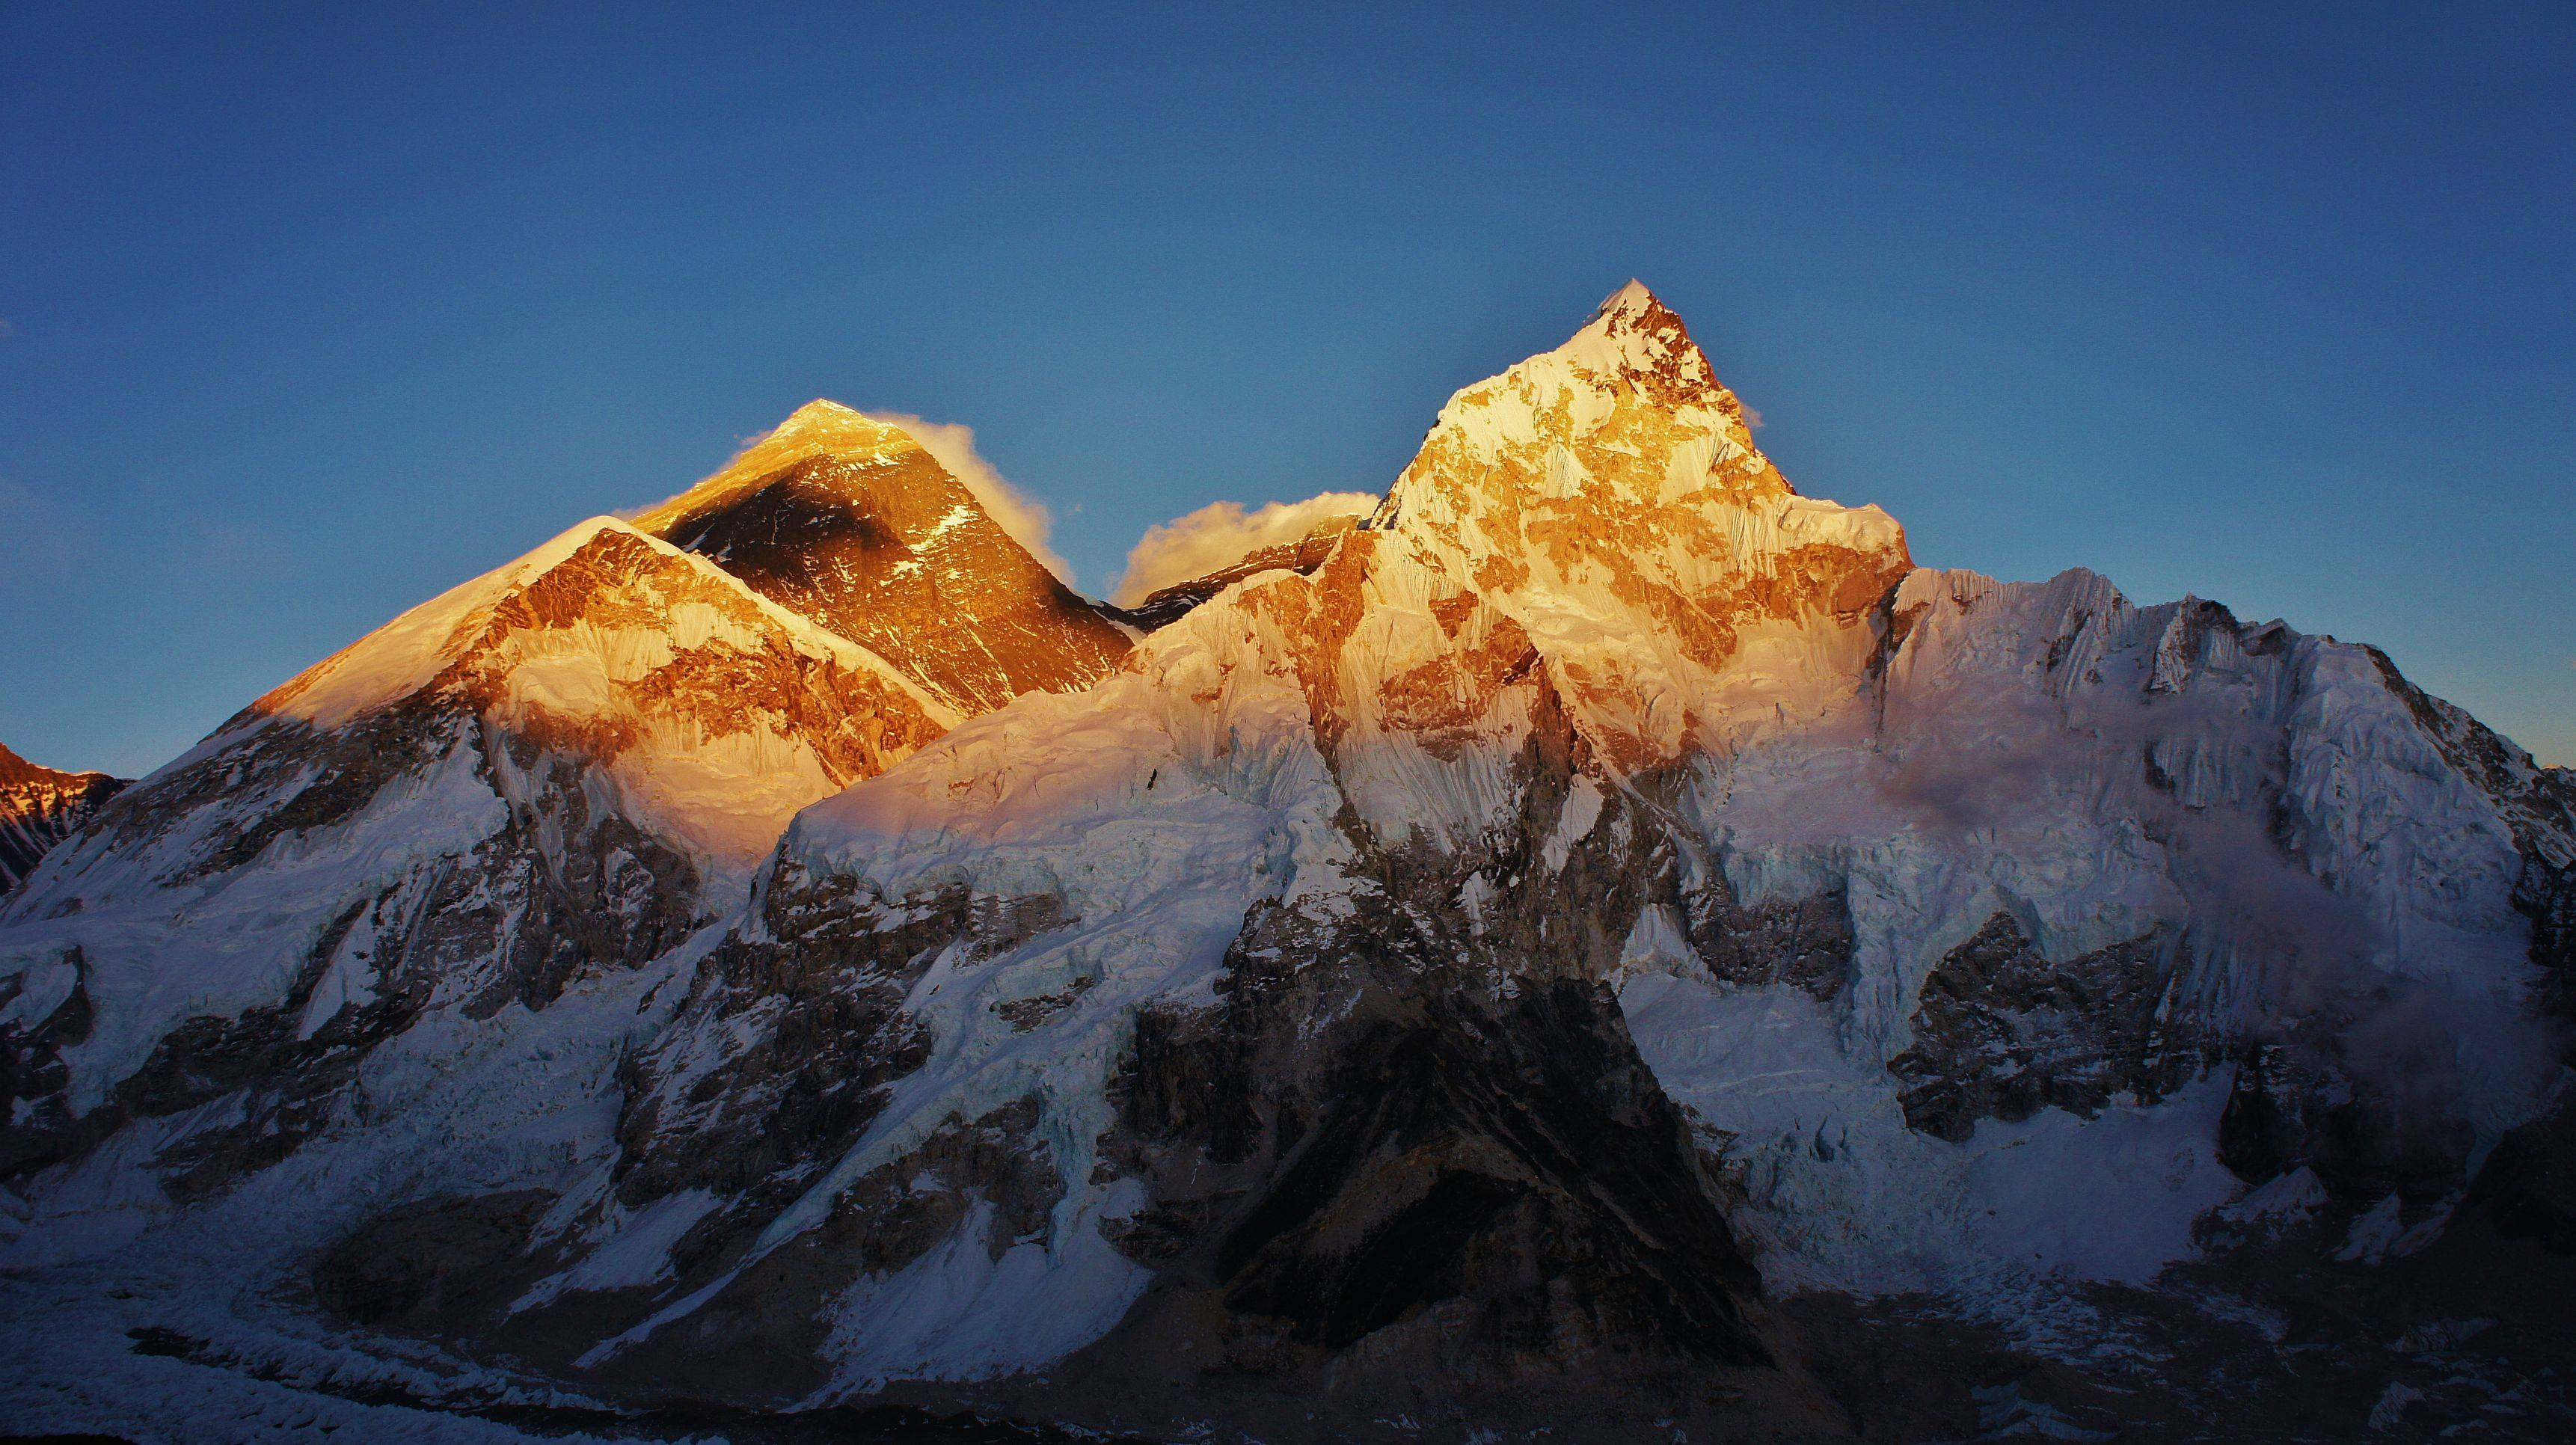 Mount Everest Wallpapers and Background Images   stmednet 3444x1932